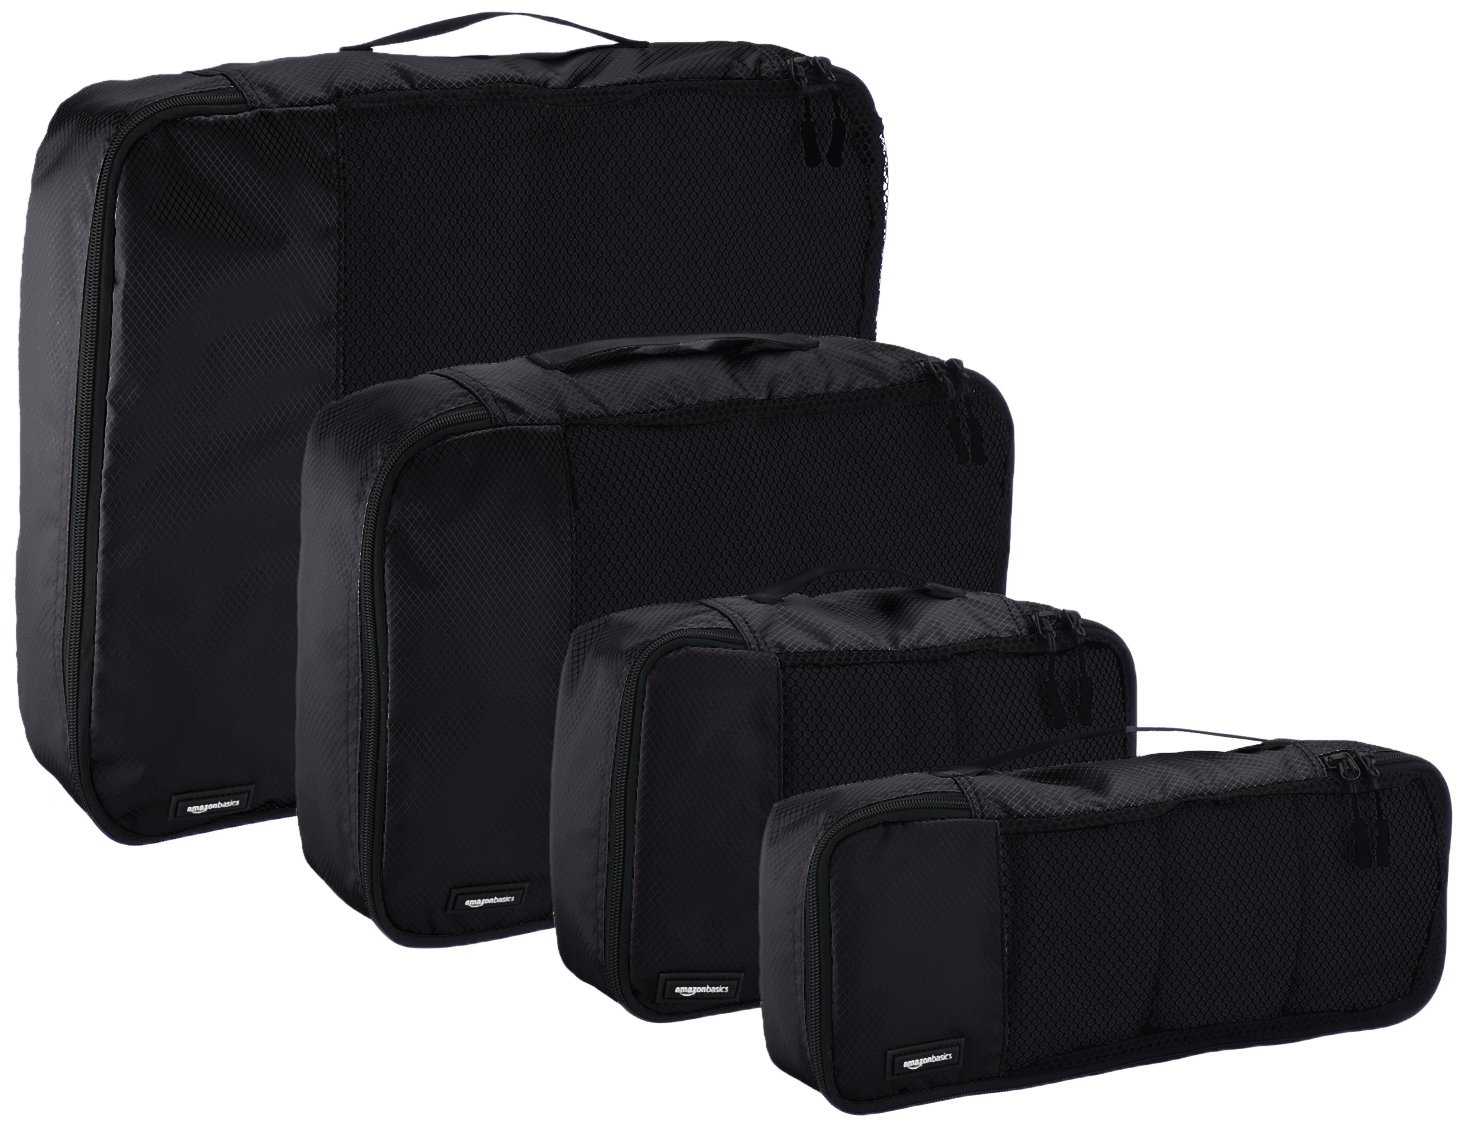 Blue Basics 4 Piece Packing Travel Organizer Cubes Set